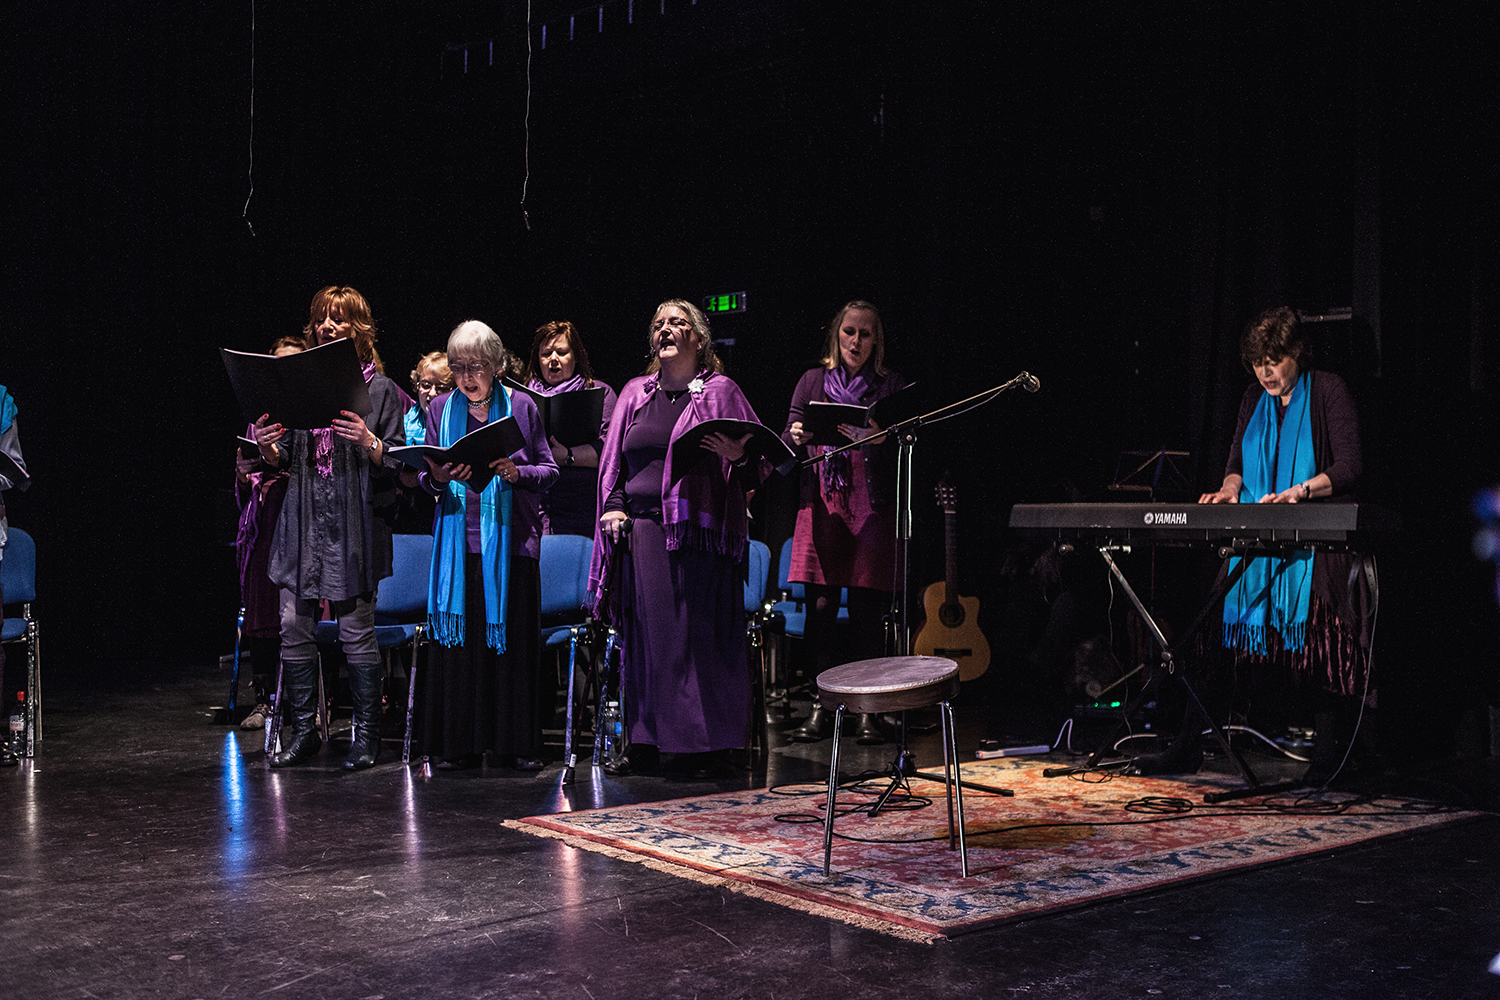 Members of the Sacred Sounds Women's Choir as they perform at their Showcase Event Photo: Michela De Rossi